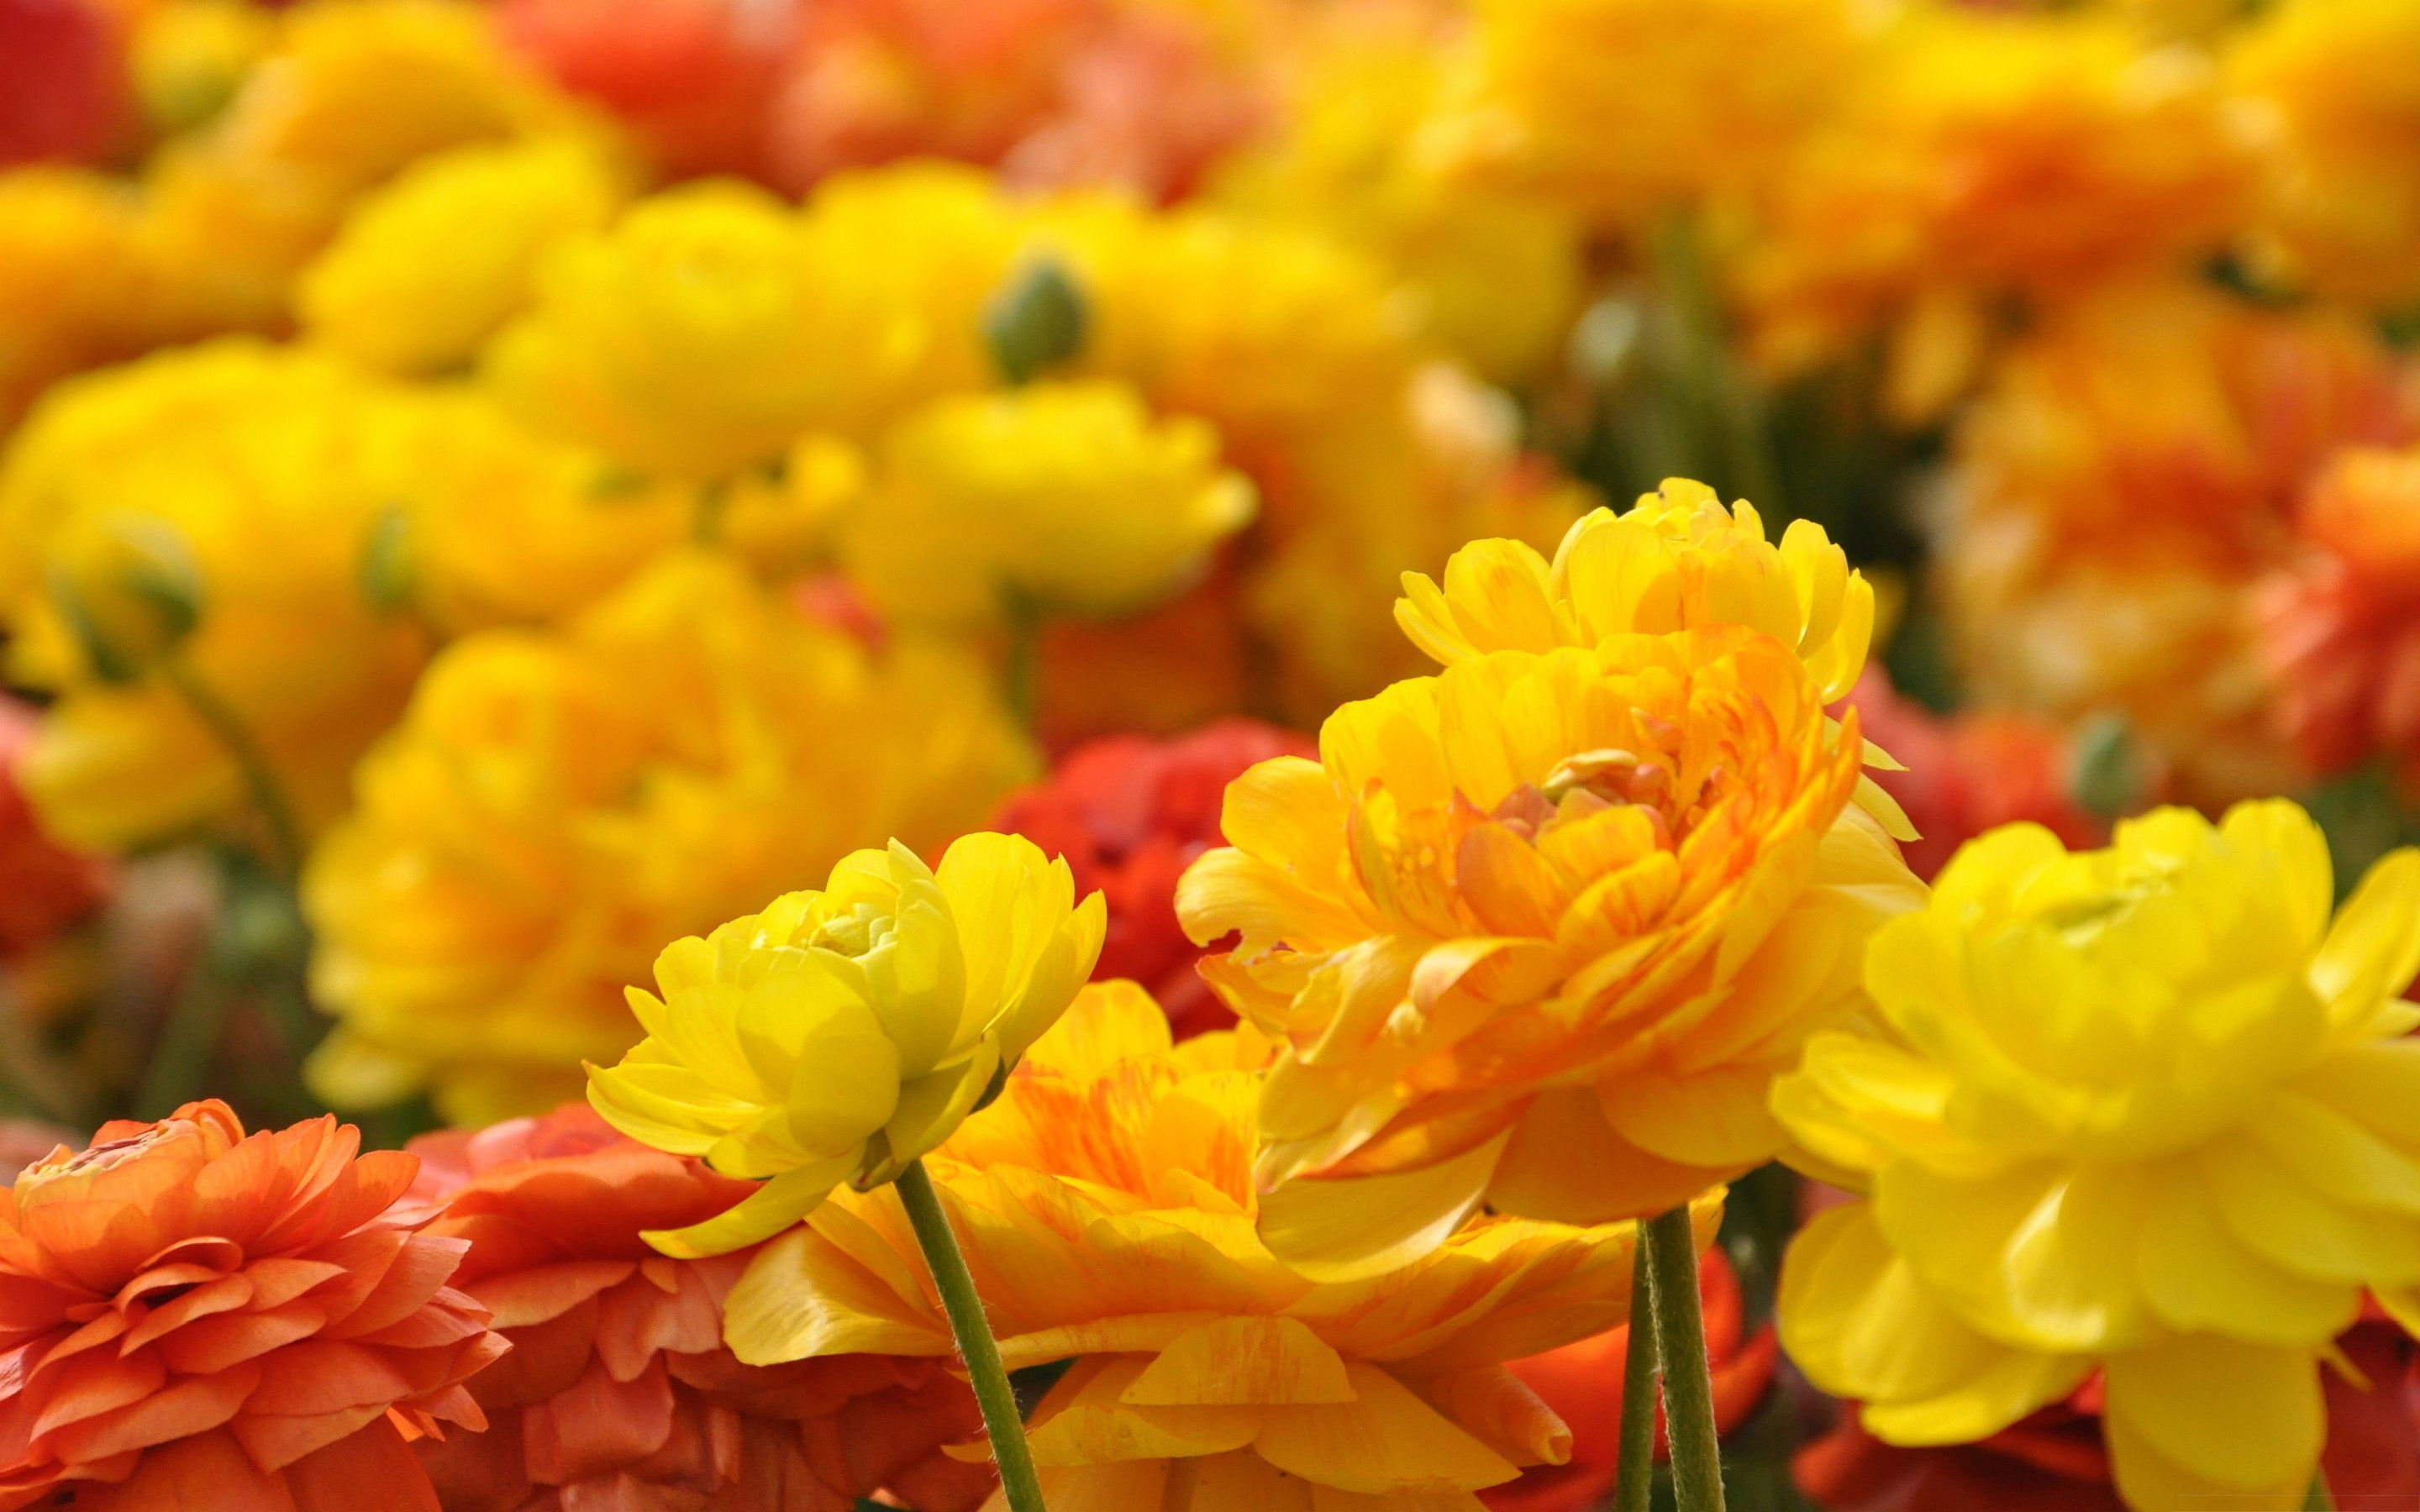 Red And Yellow Flowers Wallpapers Top Free Red And Yellow Flowers Backgrounds Wallpaperaccess